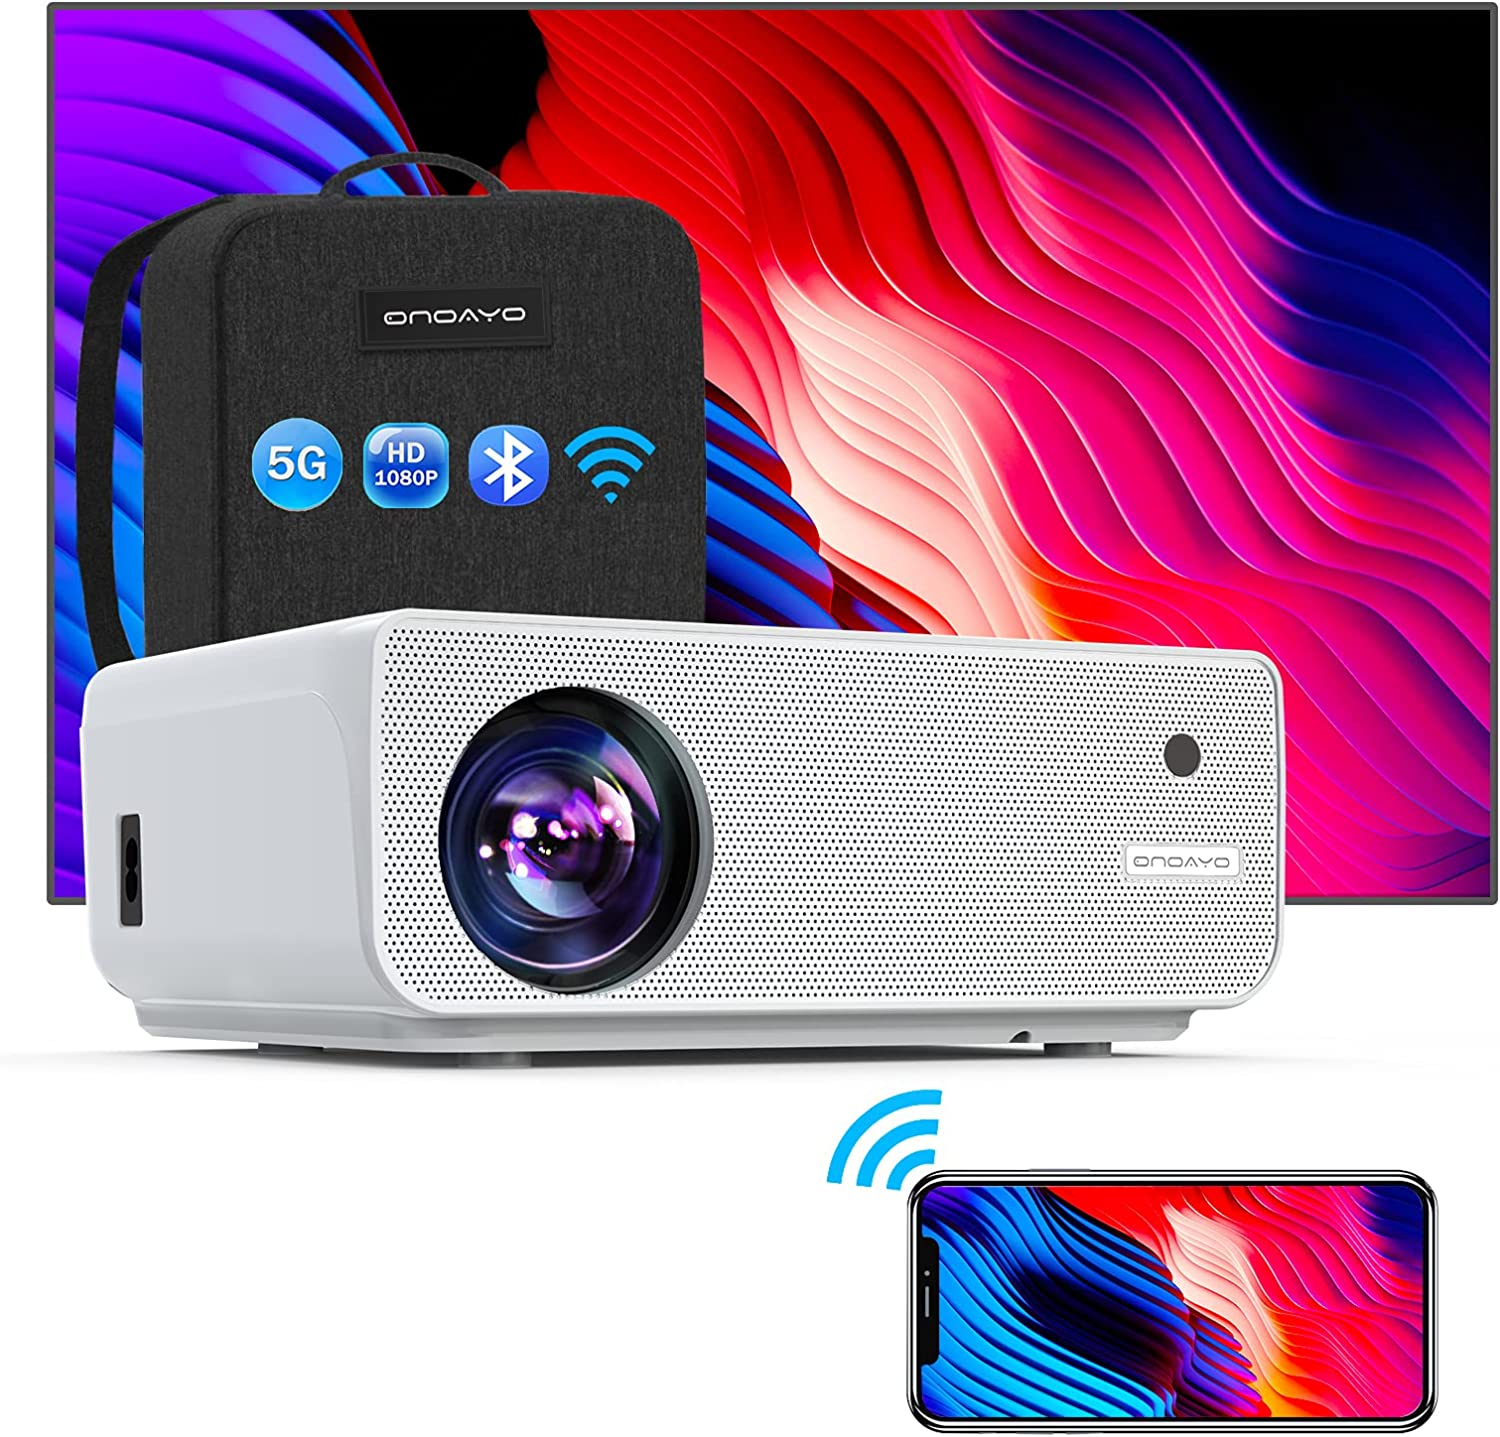 ONOAYO 5G WiFi Projector 9000L Full HD Native 1920×1080P Bluetooth Projector, ±50° 4P/4D Keystone Support 4K&Zoom, Full Sealed Optical/LCD/LED/Home/Outdoor Wireless Portable Projector for Phone,PC,PS4